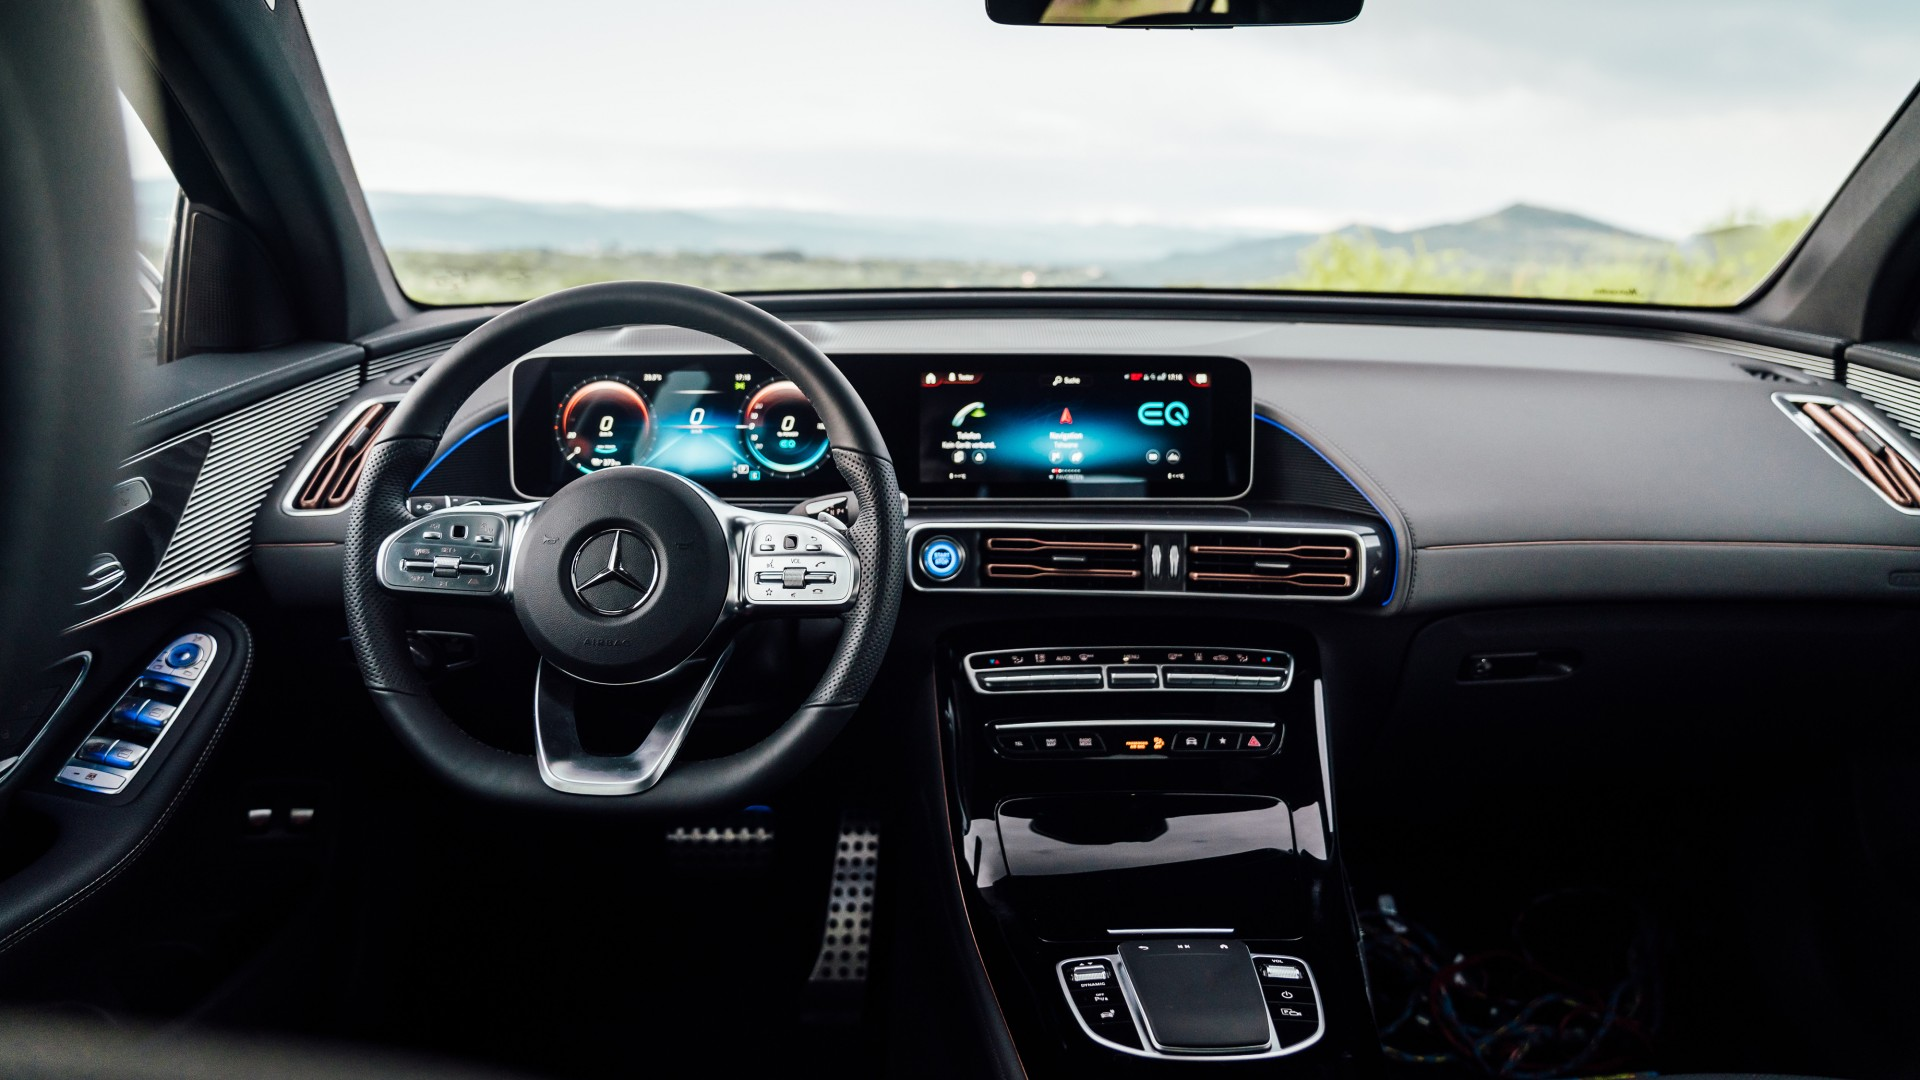 Mercedes-Benz EQC 400 4MATIC AMG Line 2019 4K Interior ...